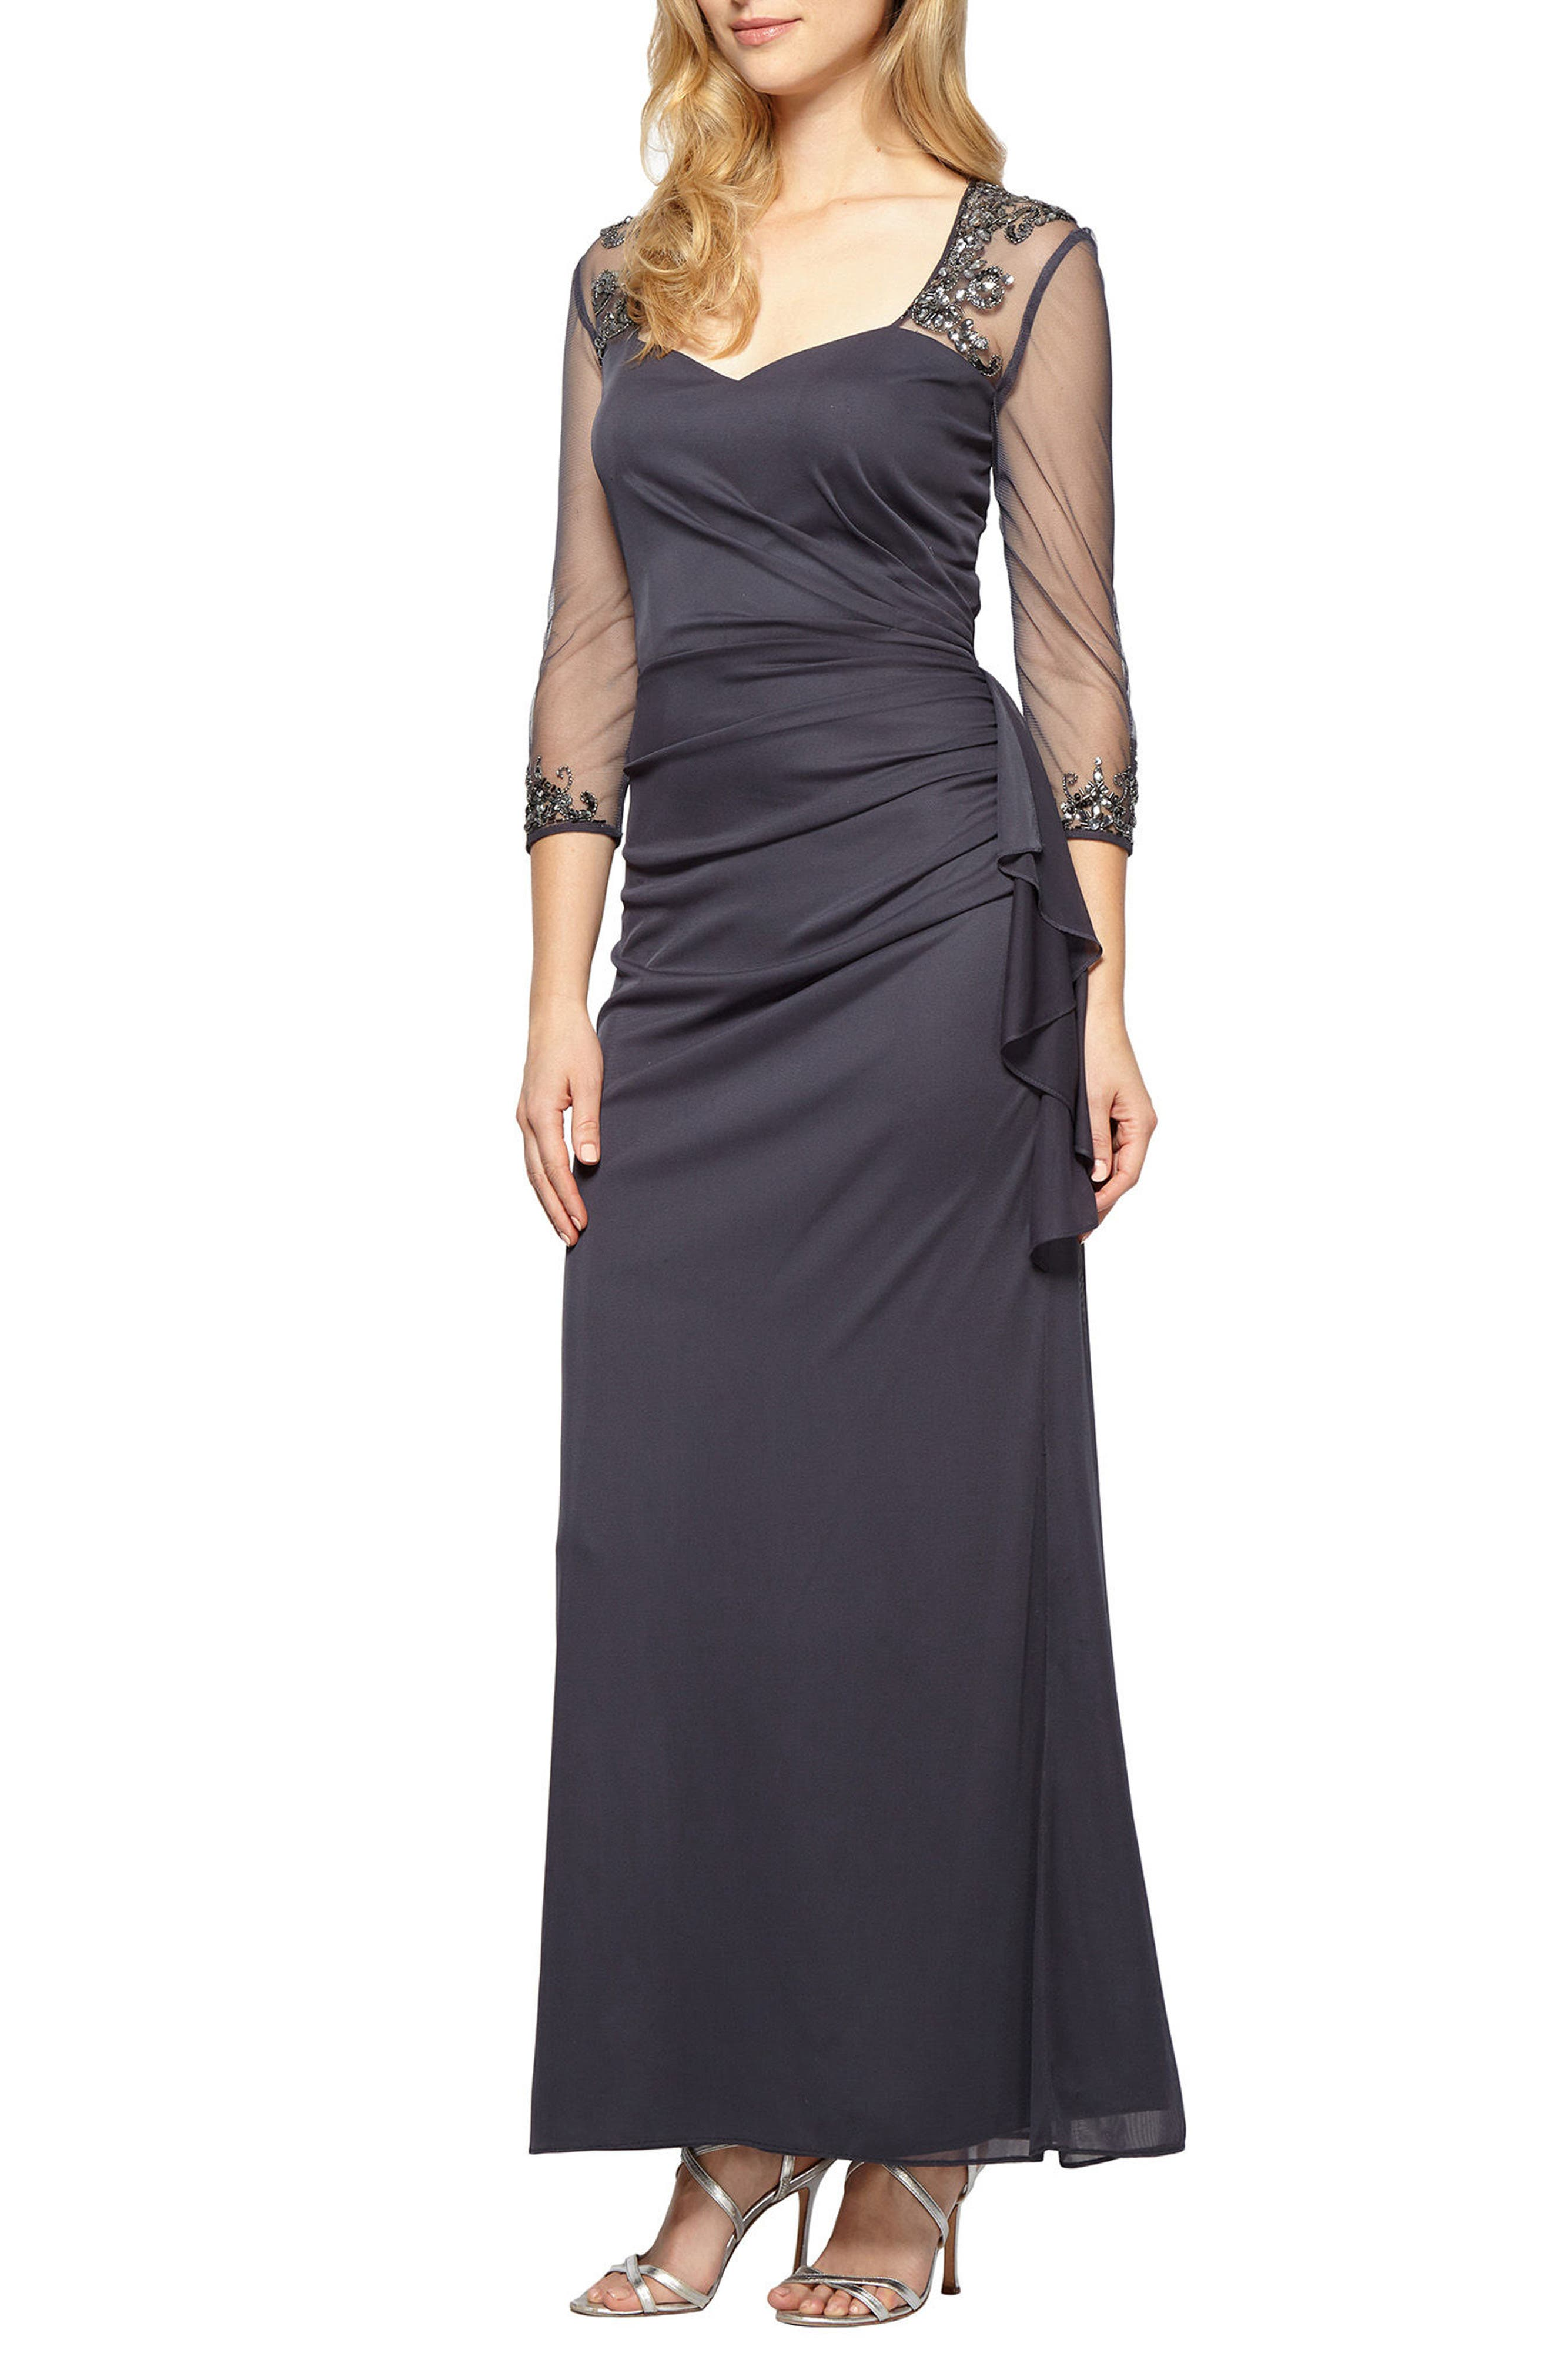 Alternate Image 1 Selected - Alex Evenings Embellished A-Line Gown (Regular & Petite)